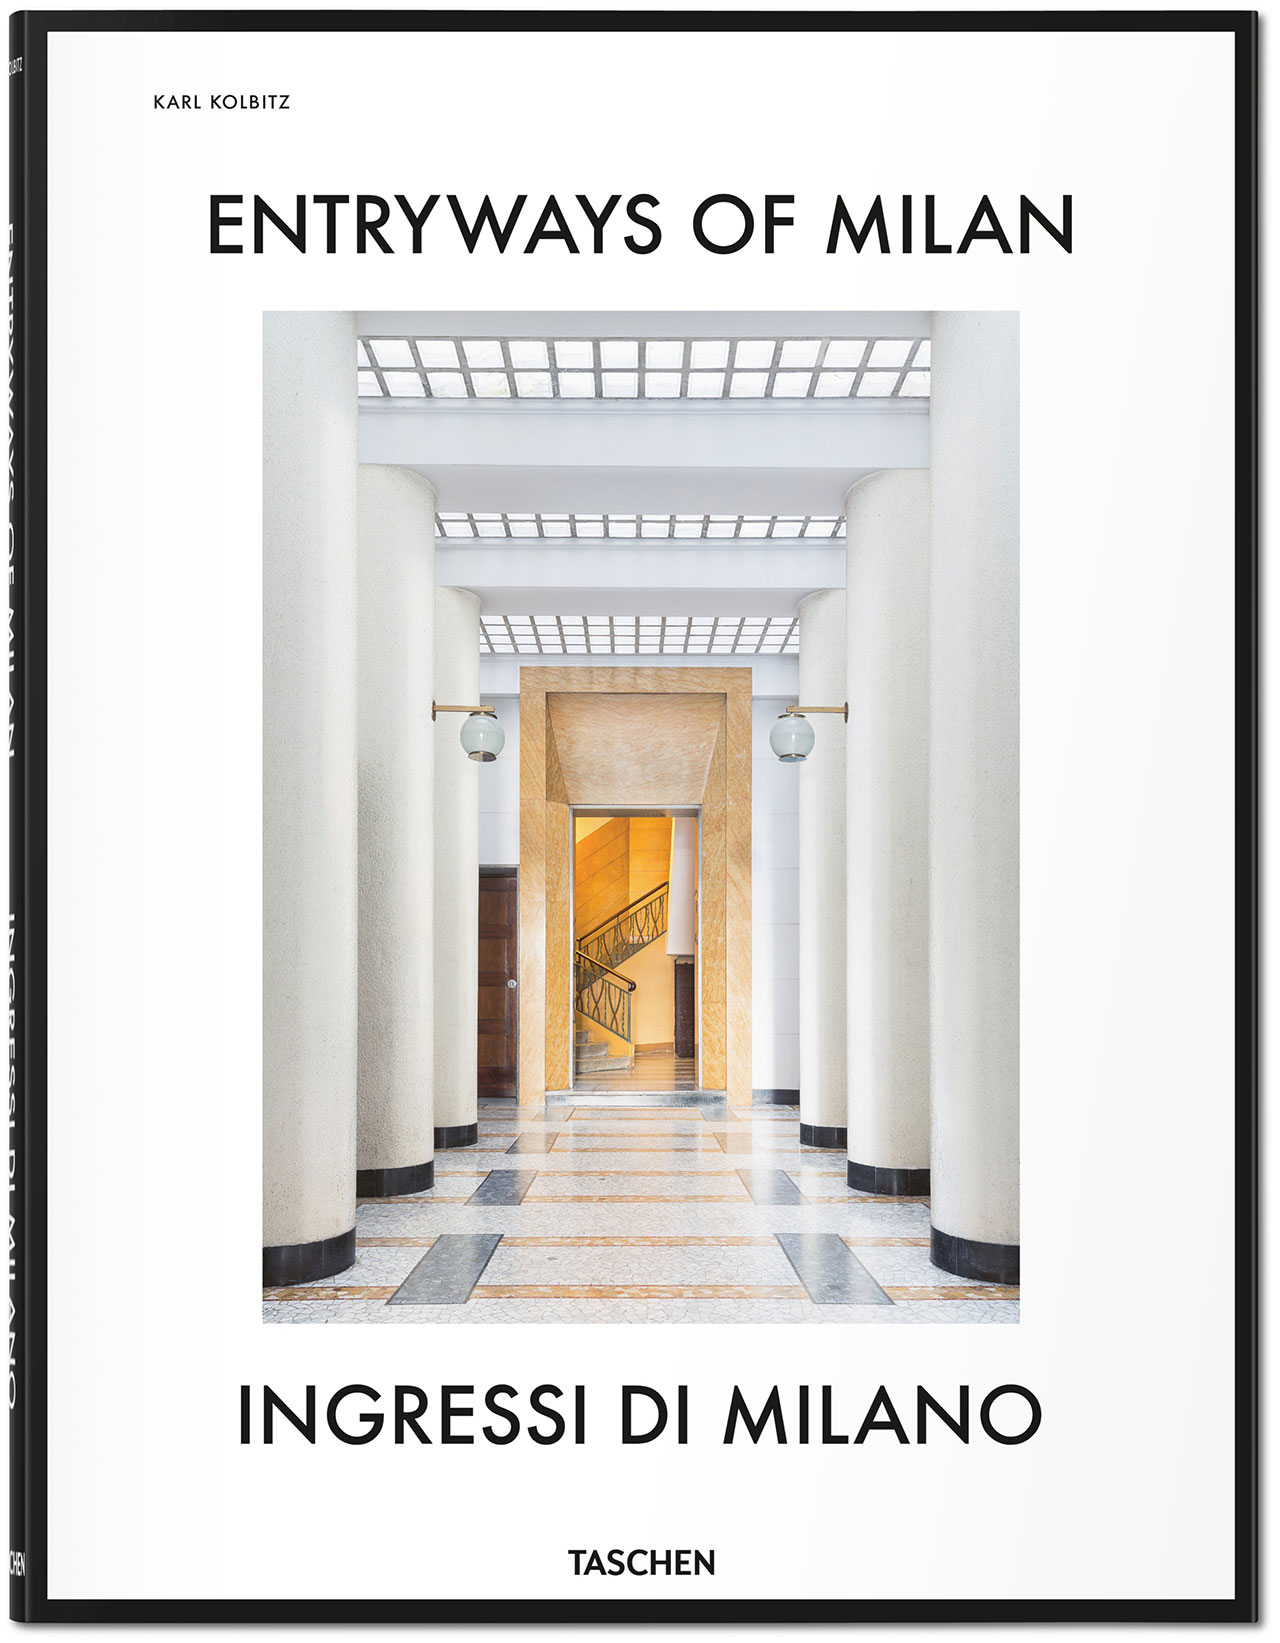 Entryways of Milan – Ingressi di Milano, book cover © Taschen.